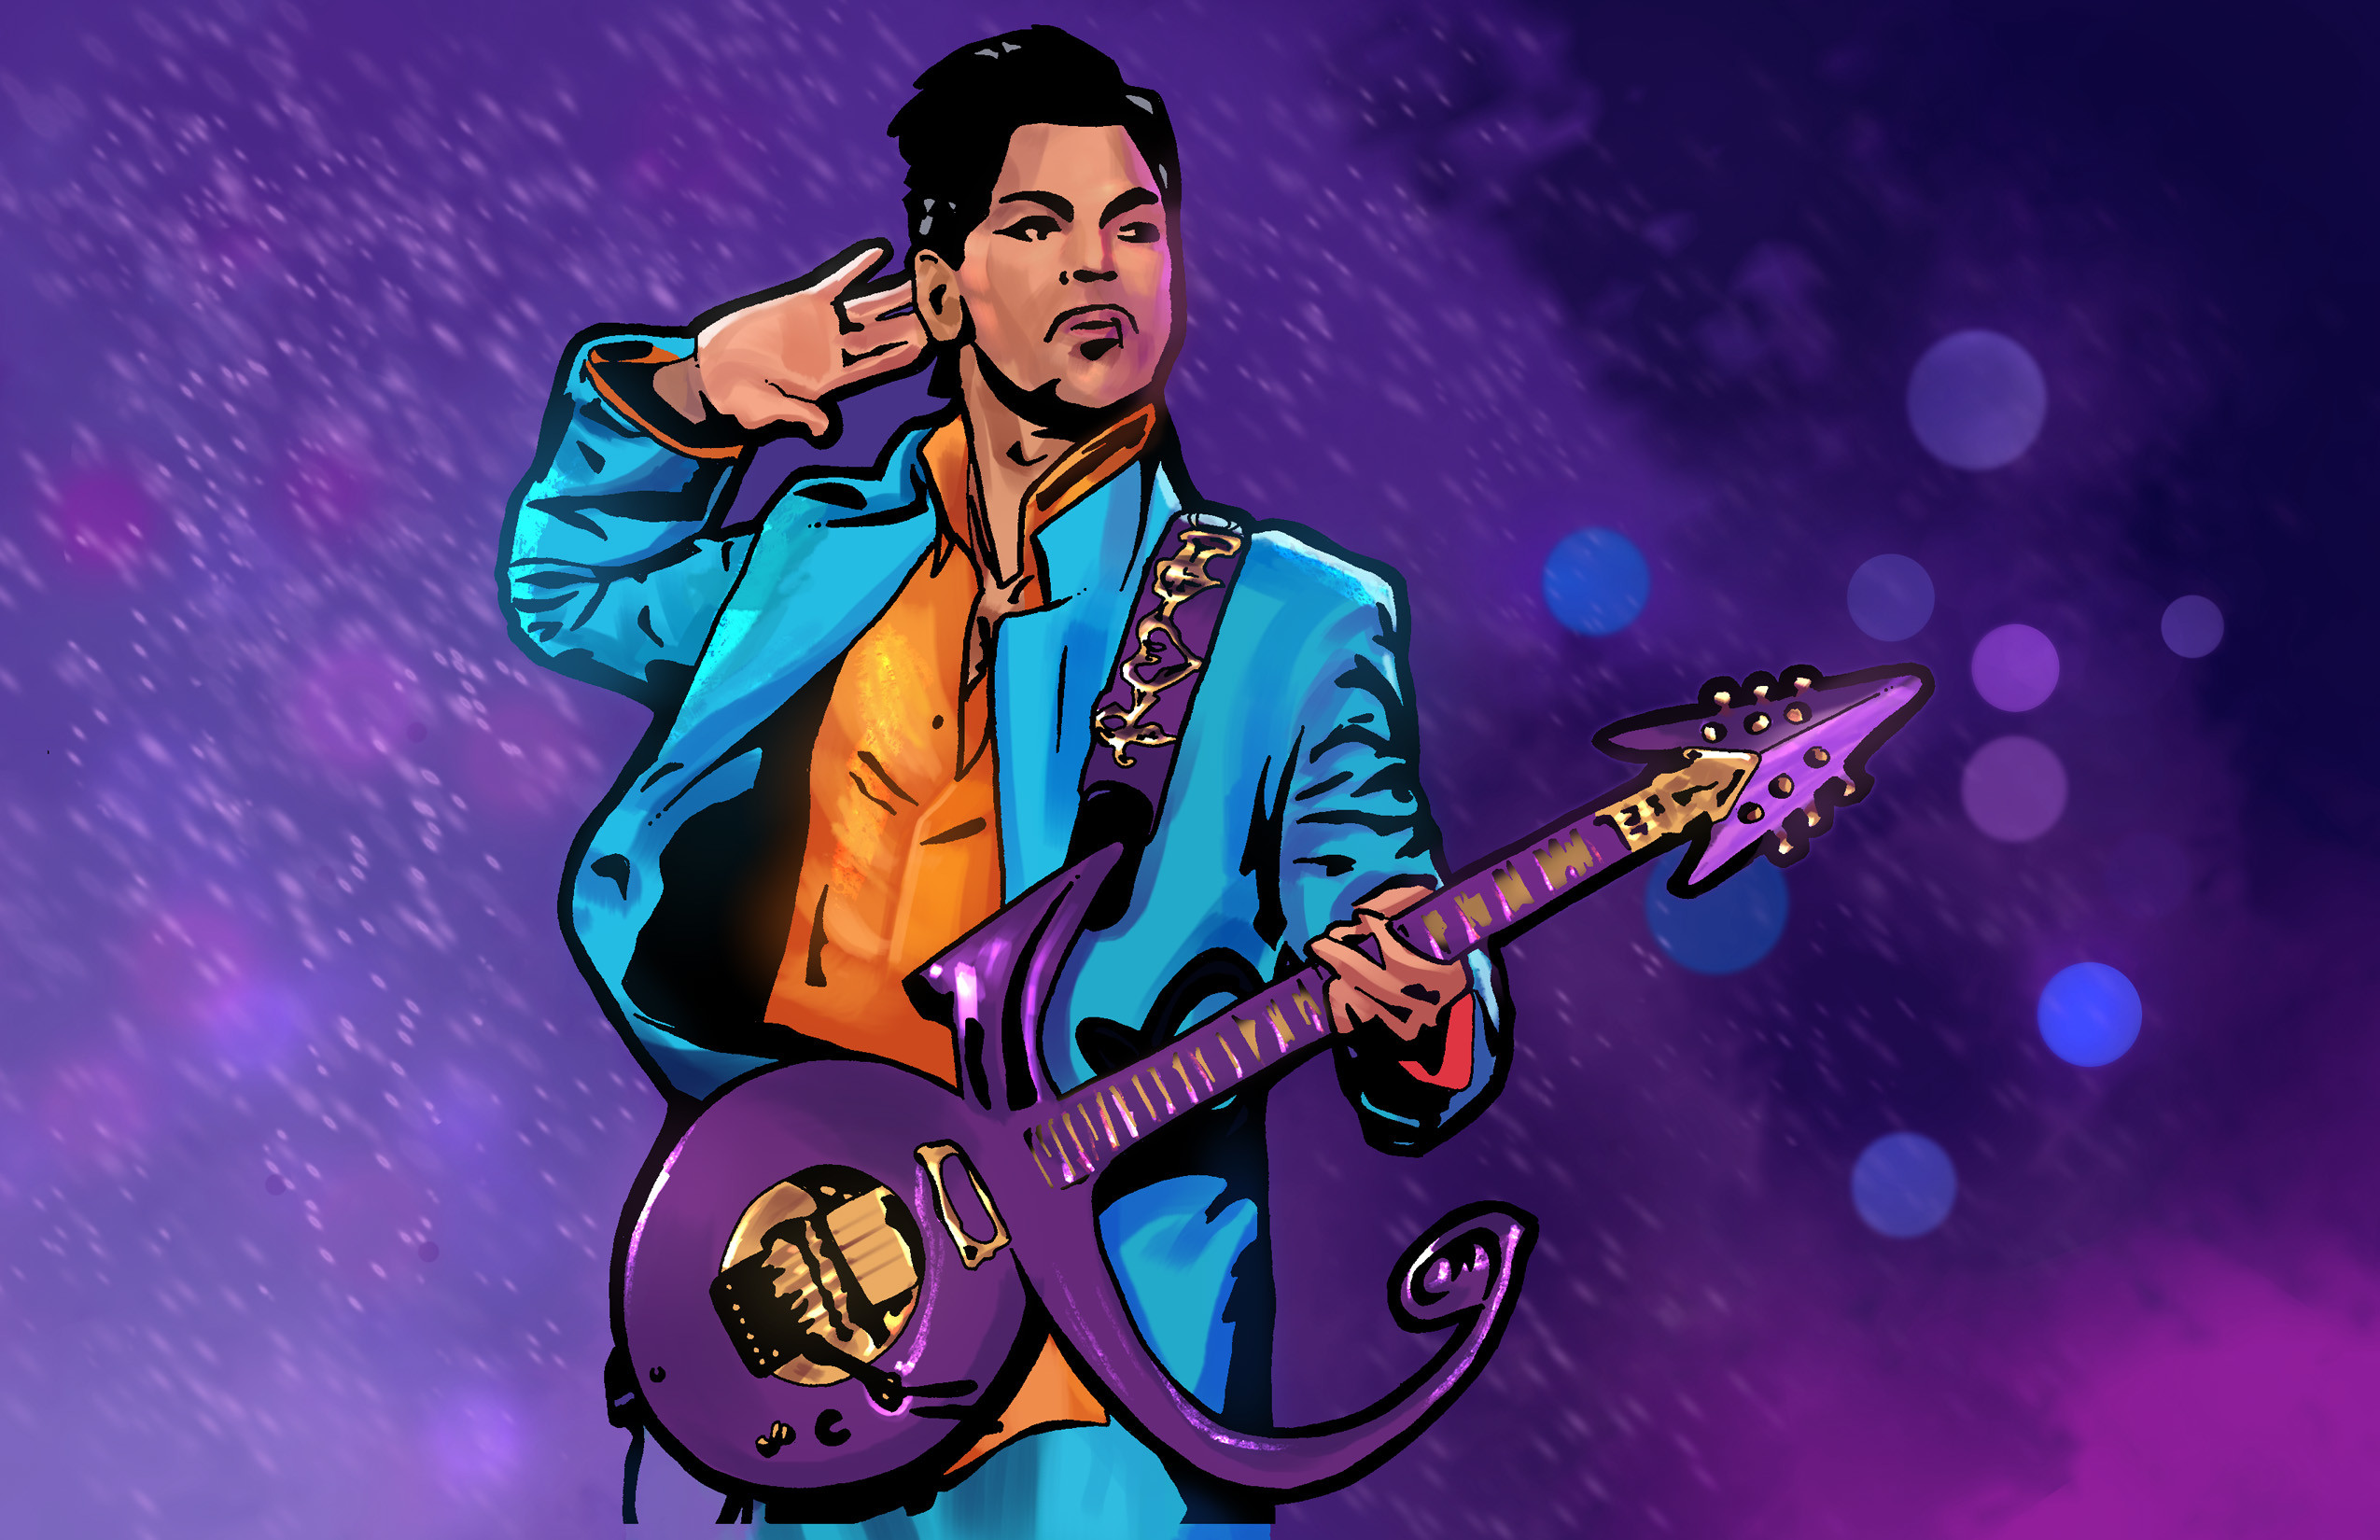 Prince wallpaper 79 images - Prince wallpaper ...